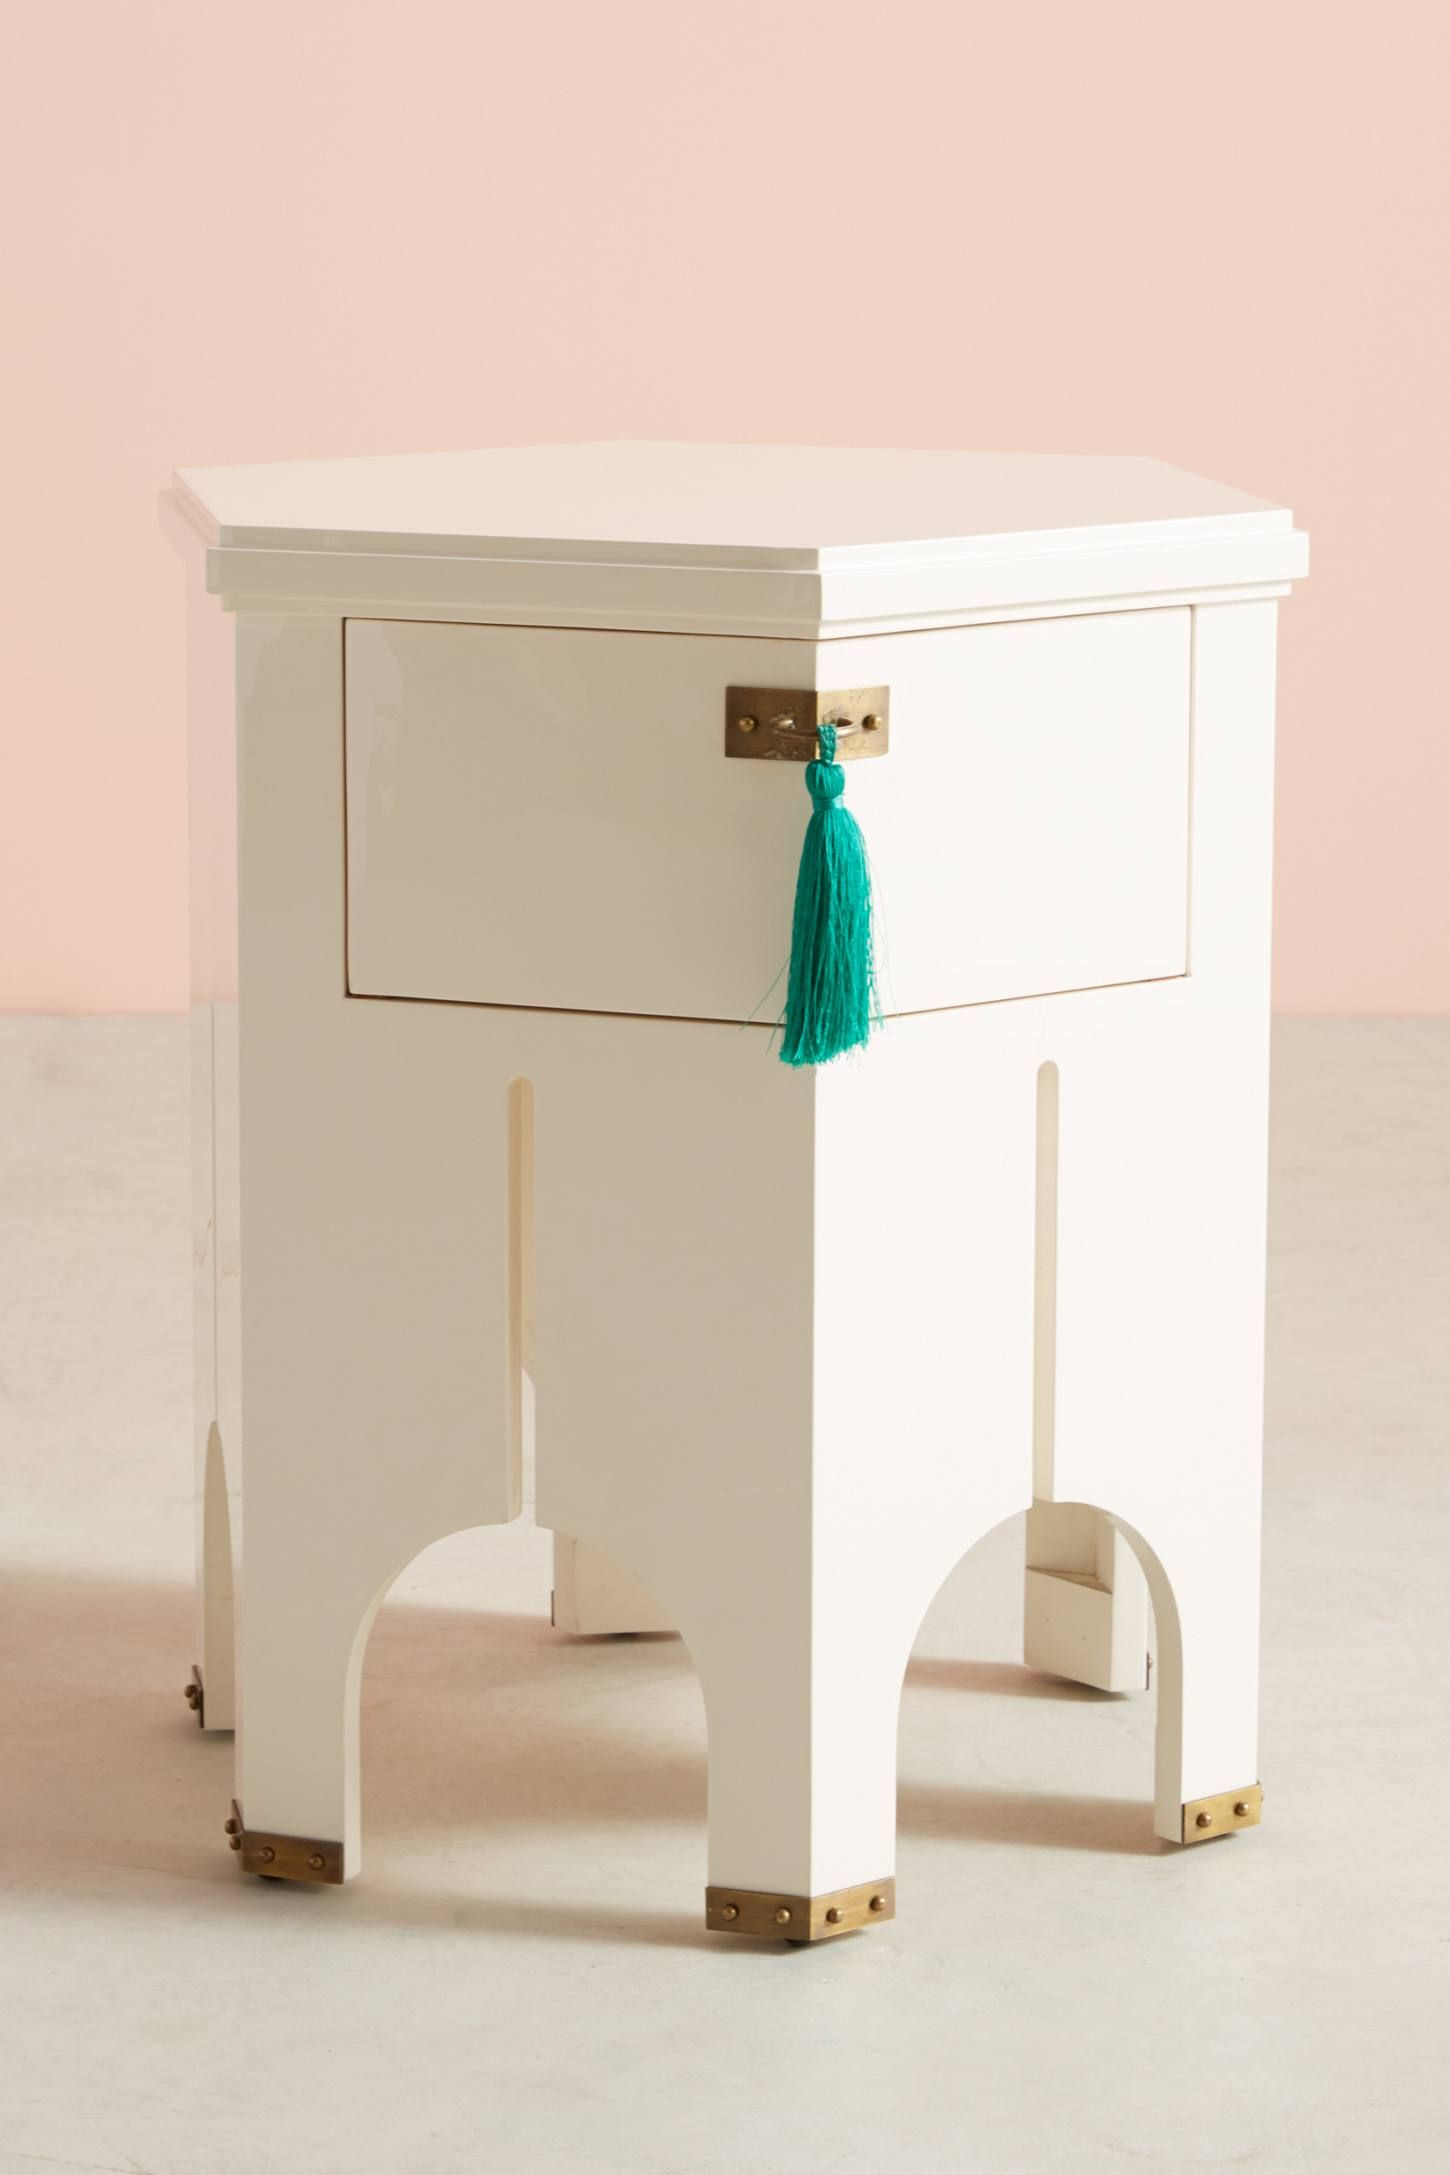 tasseled archway side table bedrooms small space furniture and pottery barn jamie accent the more anthropologie today read customer reviews discover product details bar black